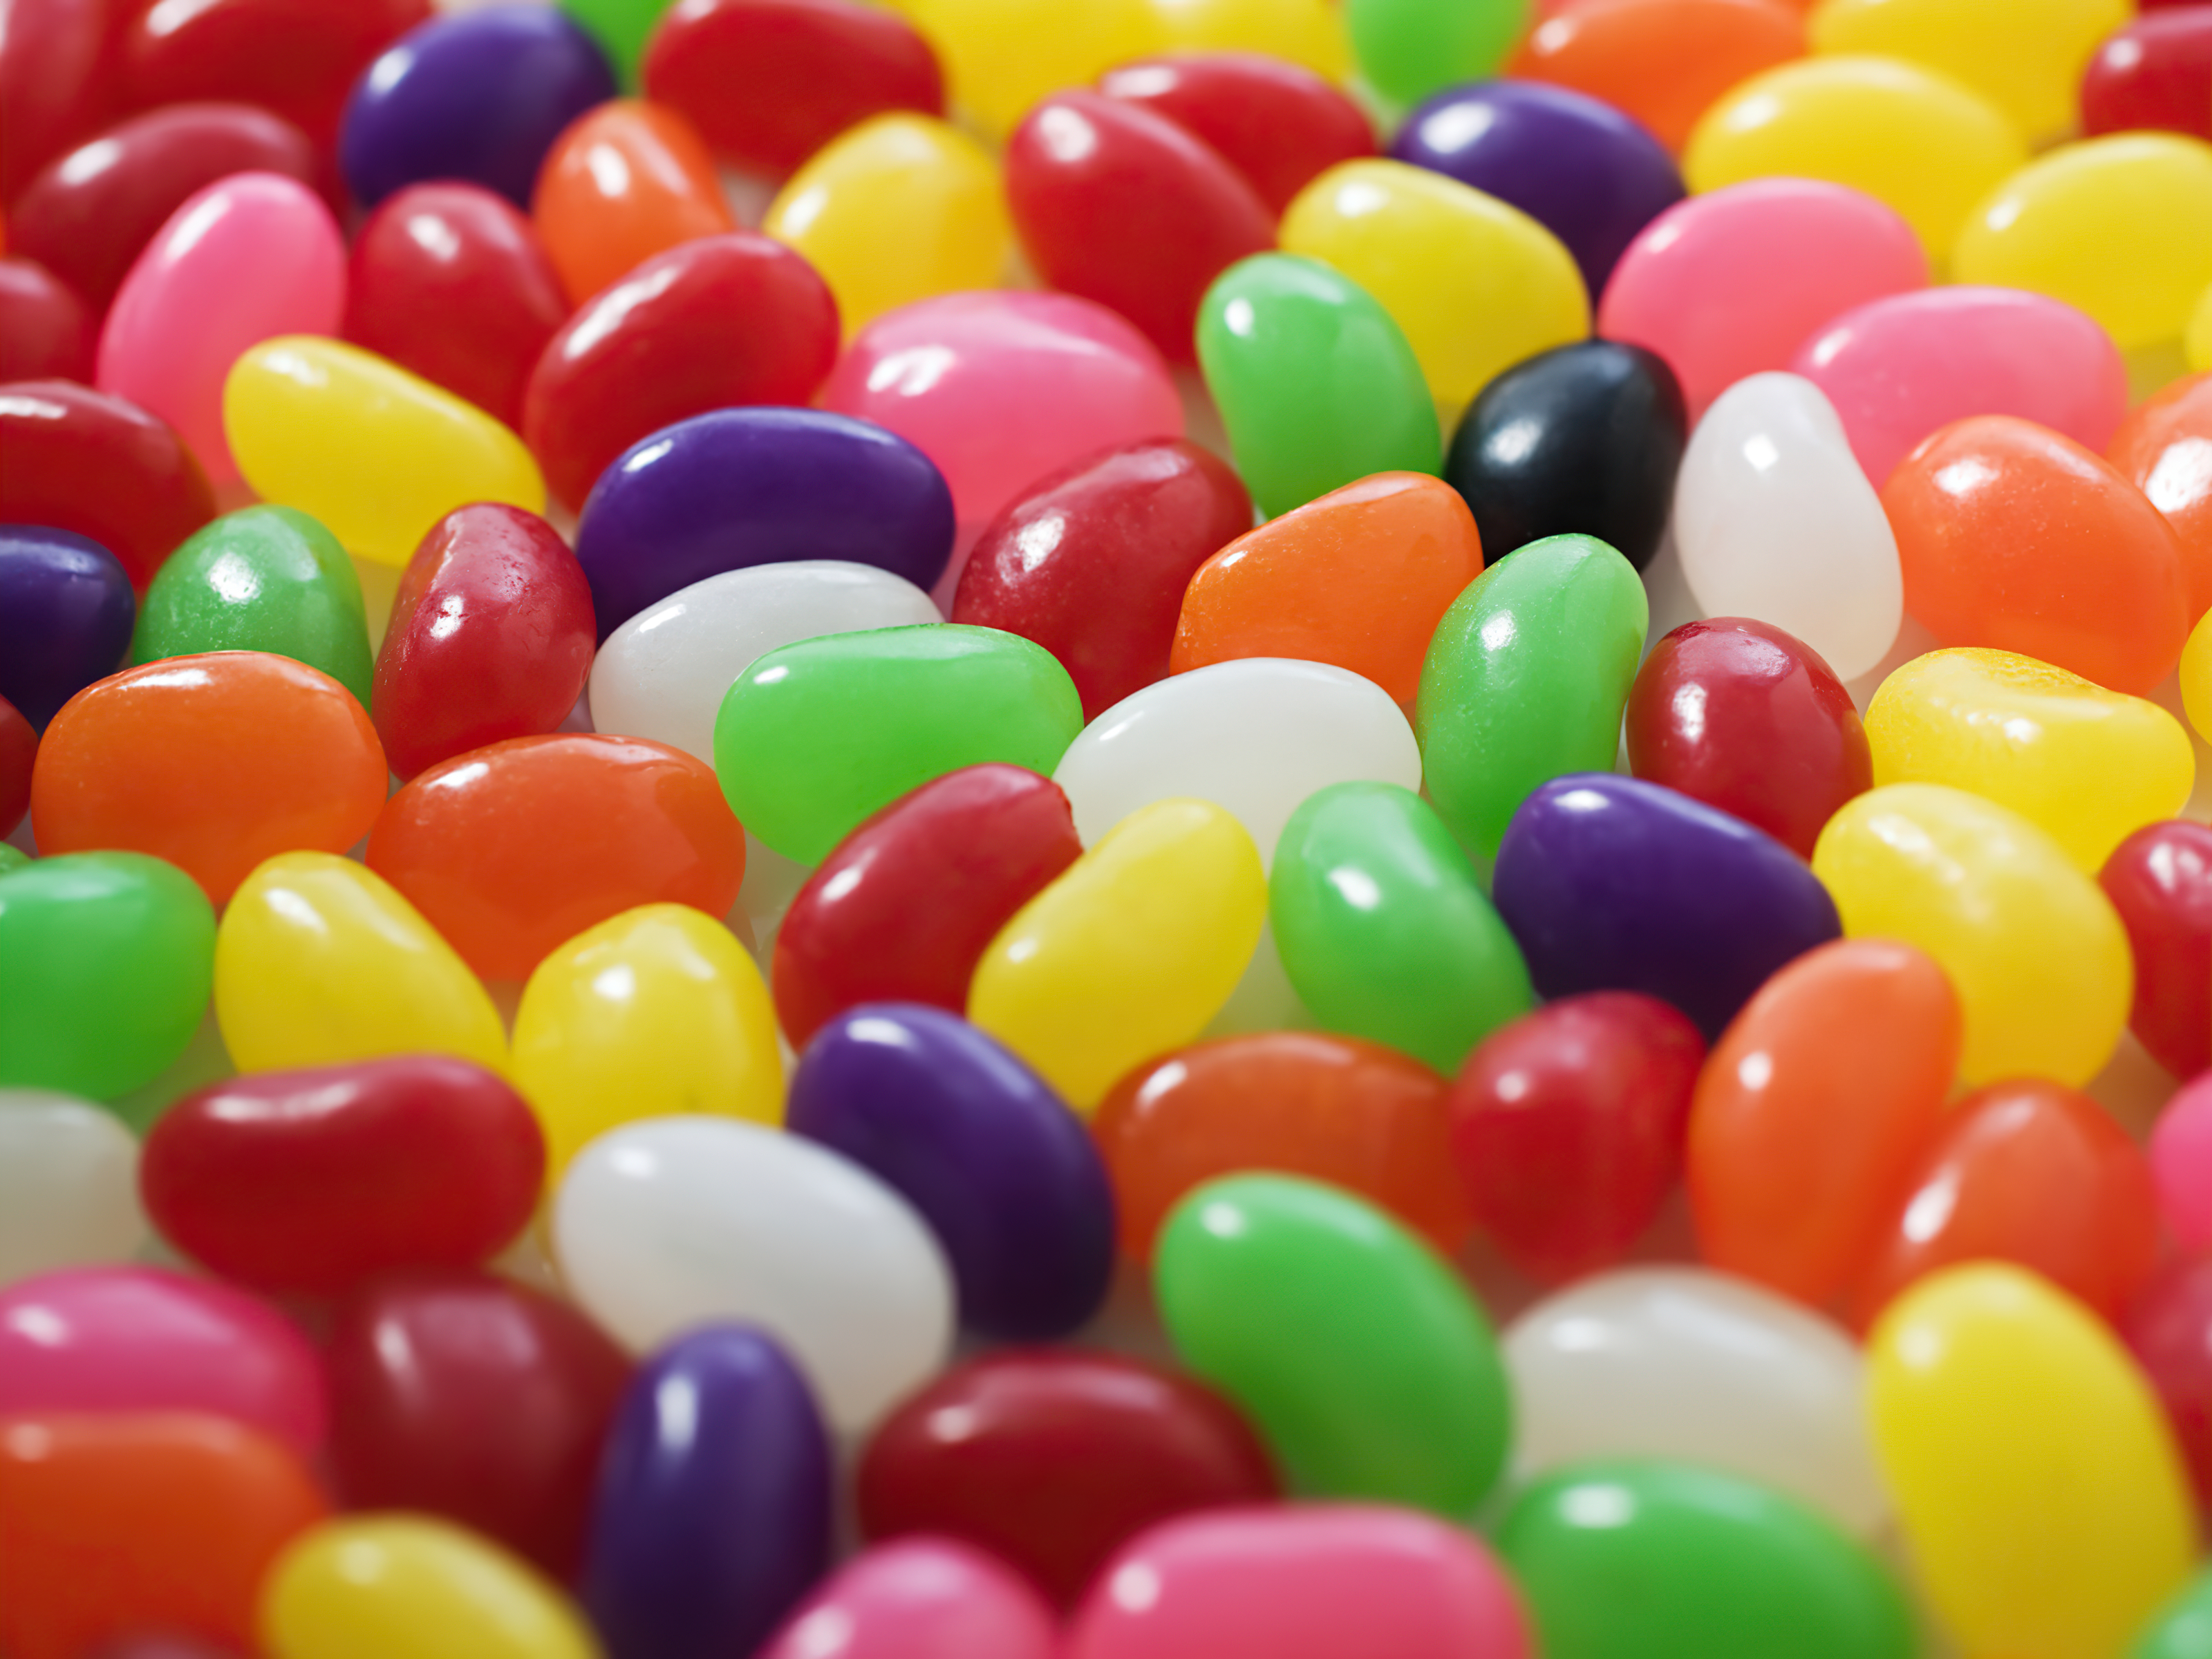 candy wallpaper and background image  1600x1200  id